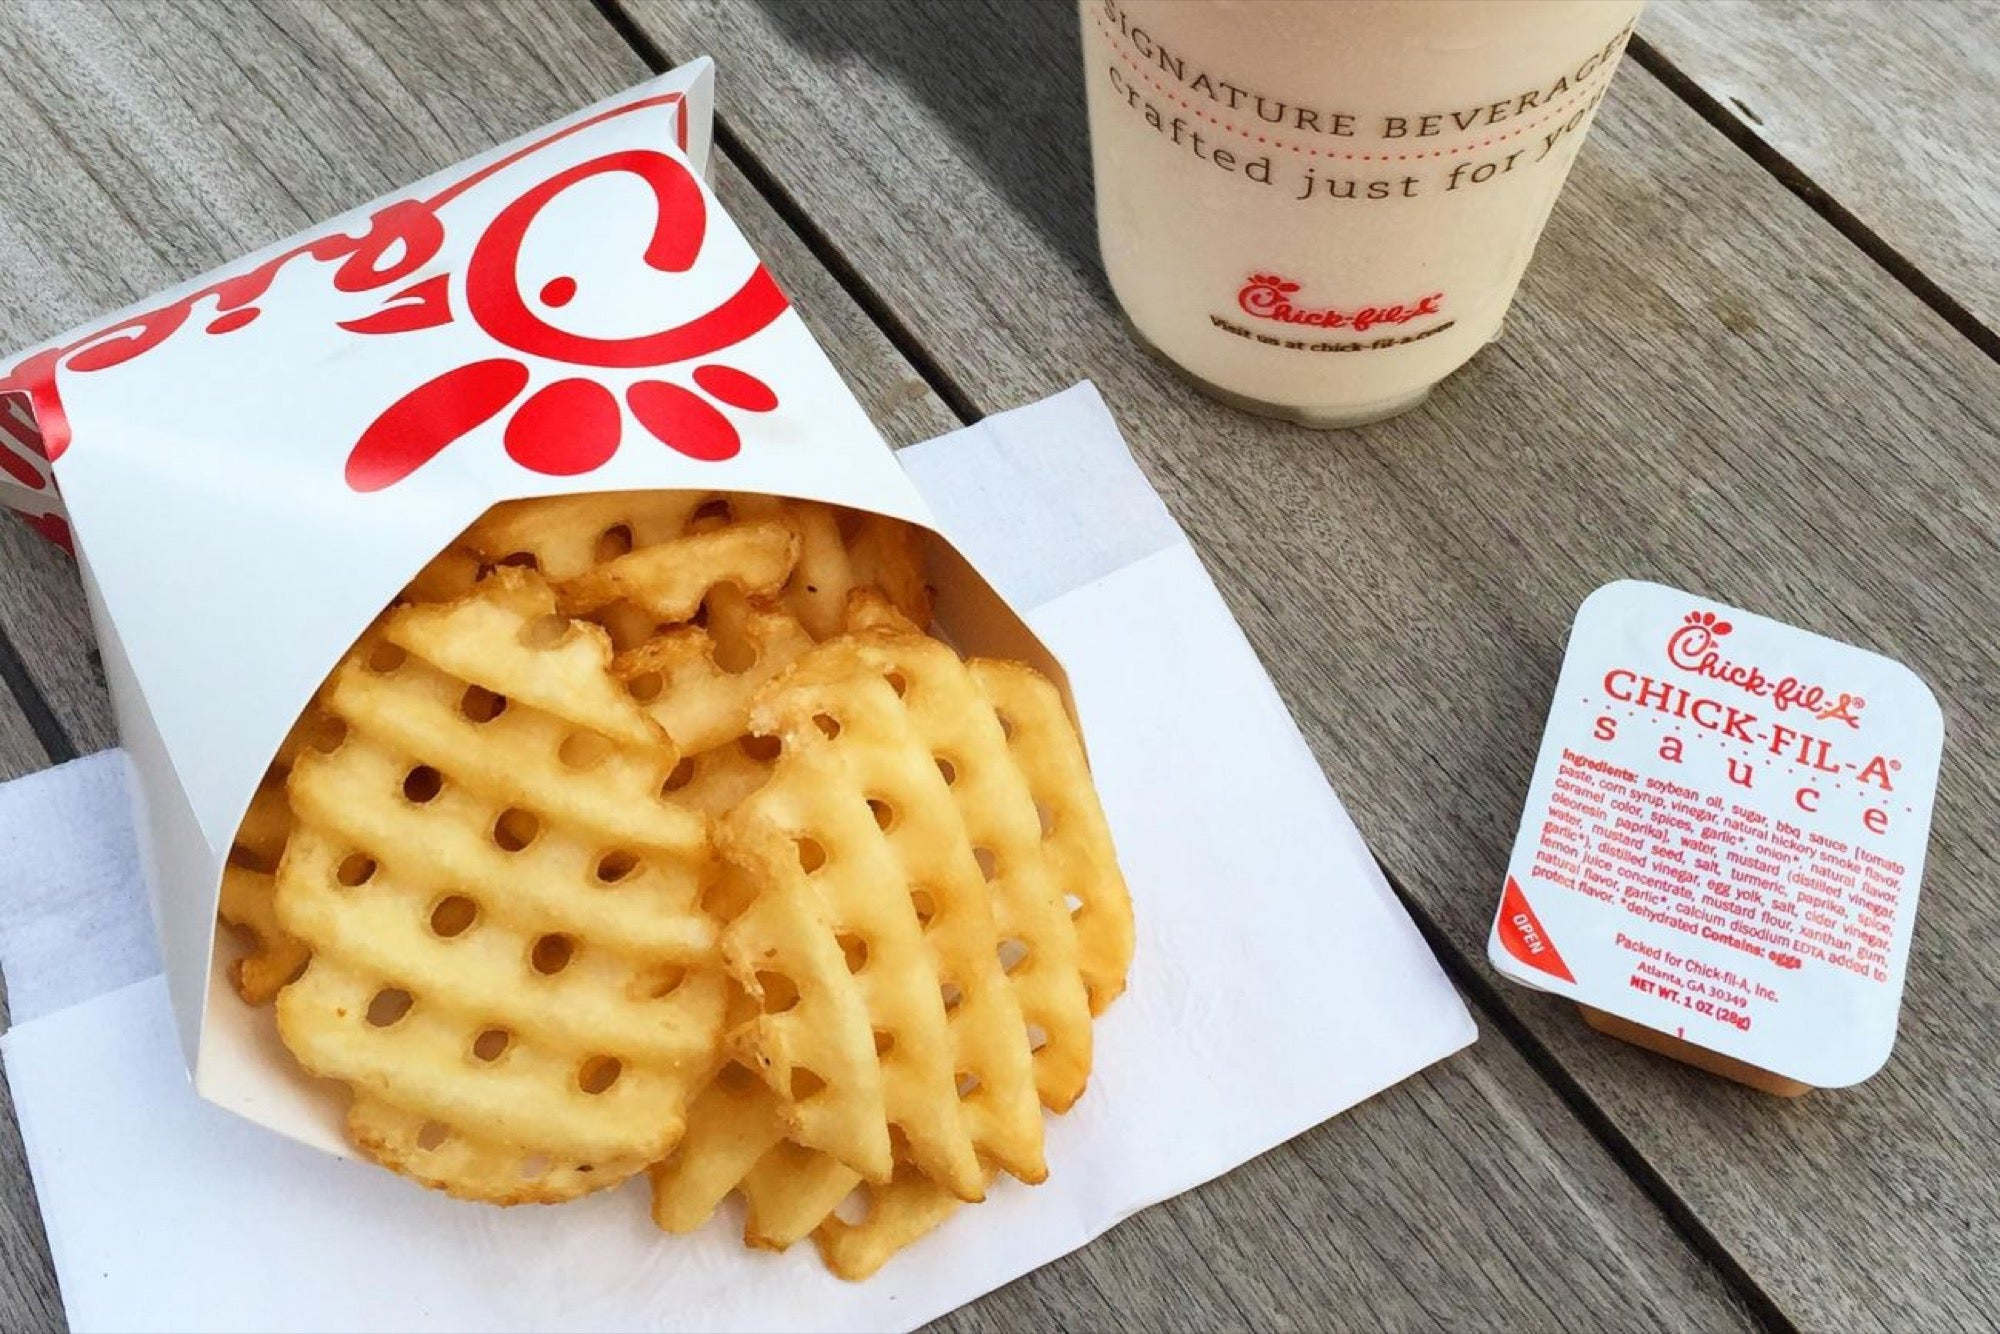 photograph regarding Chick Fil a Printable Application referred to as 25 Intriguing Information Yourself Really should Recognize In excess of Chick-fil-A